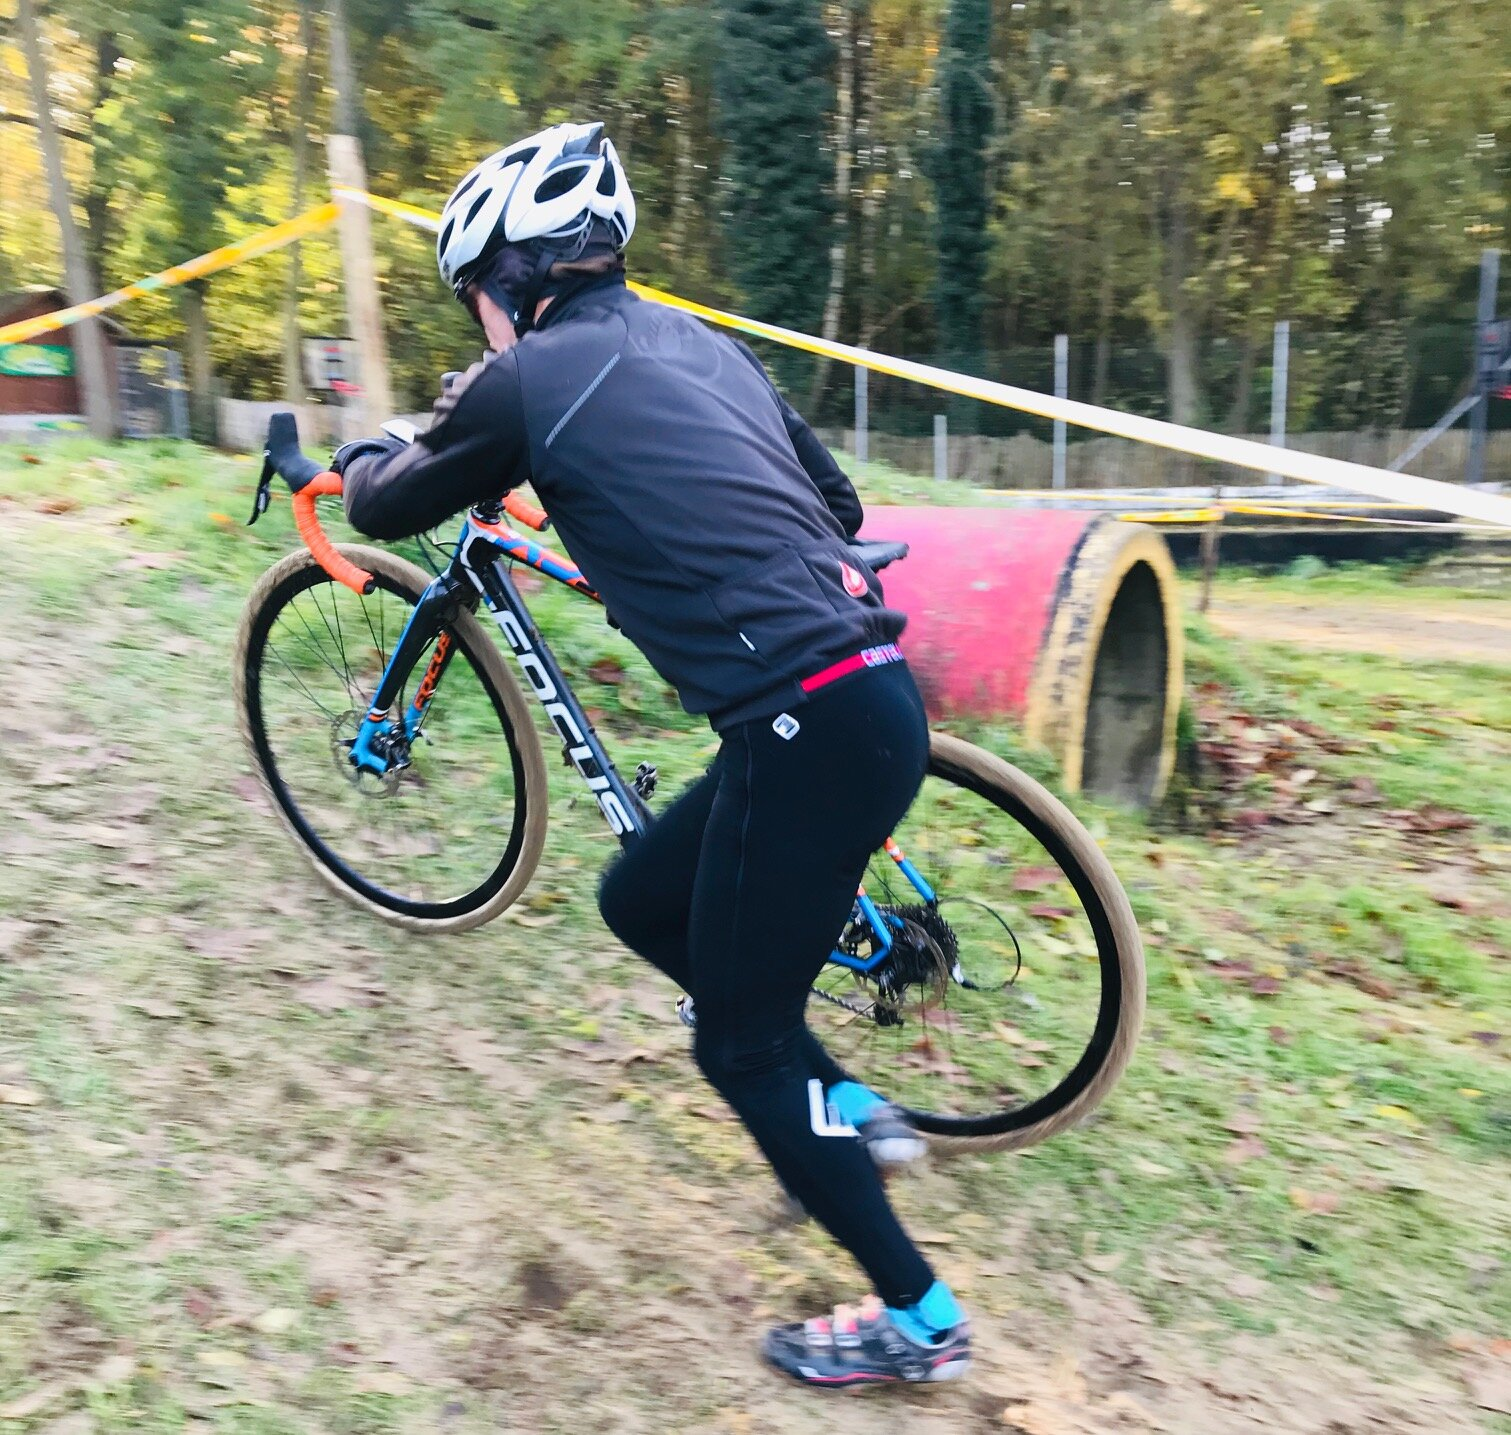 Zottegem Cyclocross Belgium @ 9 Nov - Mike Lawson (BiciSport Master) on the warm up lap before the race start, just after the short sandpit run